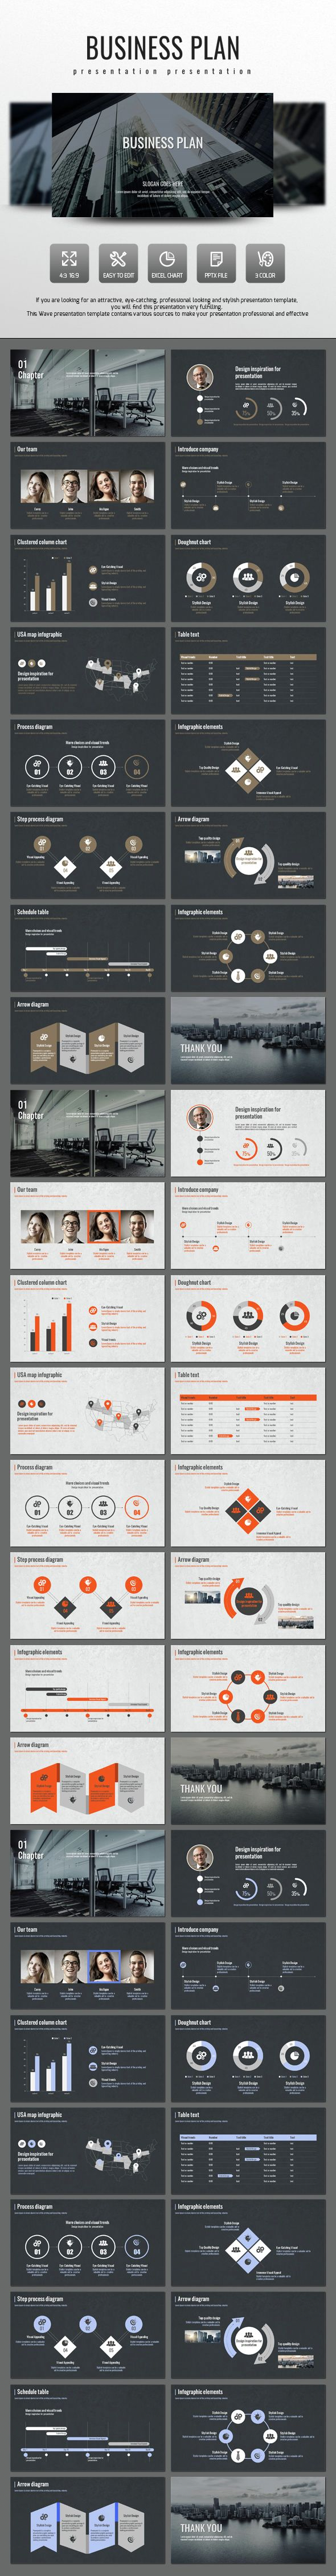 Business Plan (PowerPoint Templates)